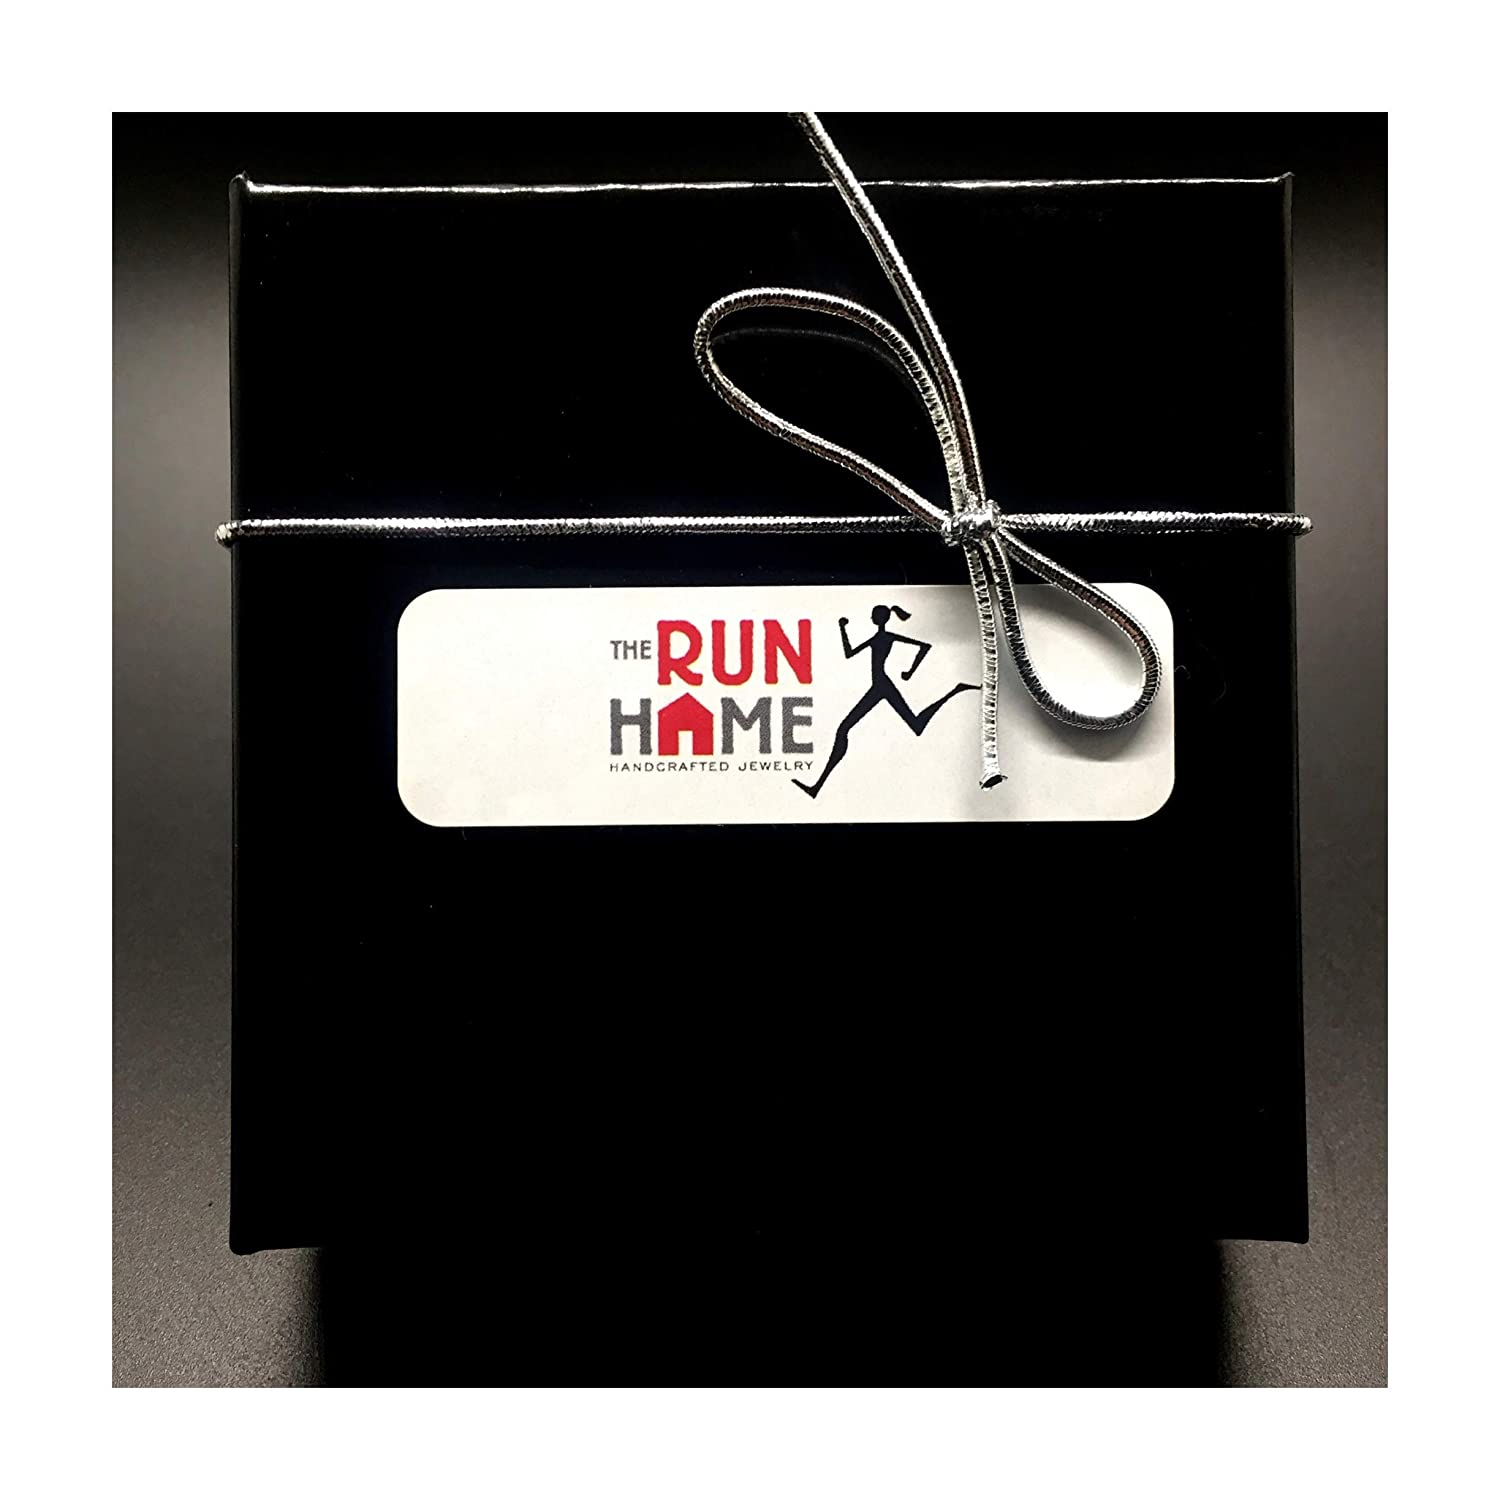 Running with Wings Key Chain 2 Pewter Wing Charms and 1 Pewter Running Shoe Charm with Stainless Steel Split Rings Charm on Stainless Steel Round Key Ring